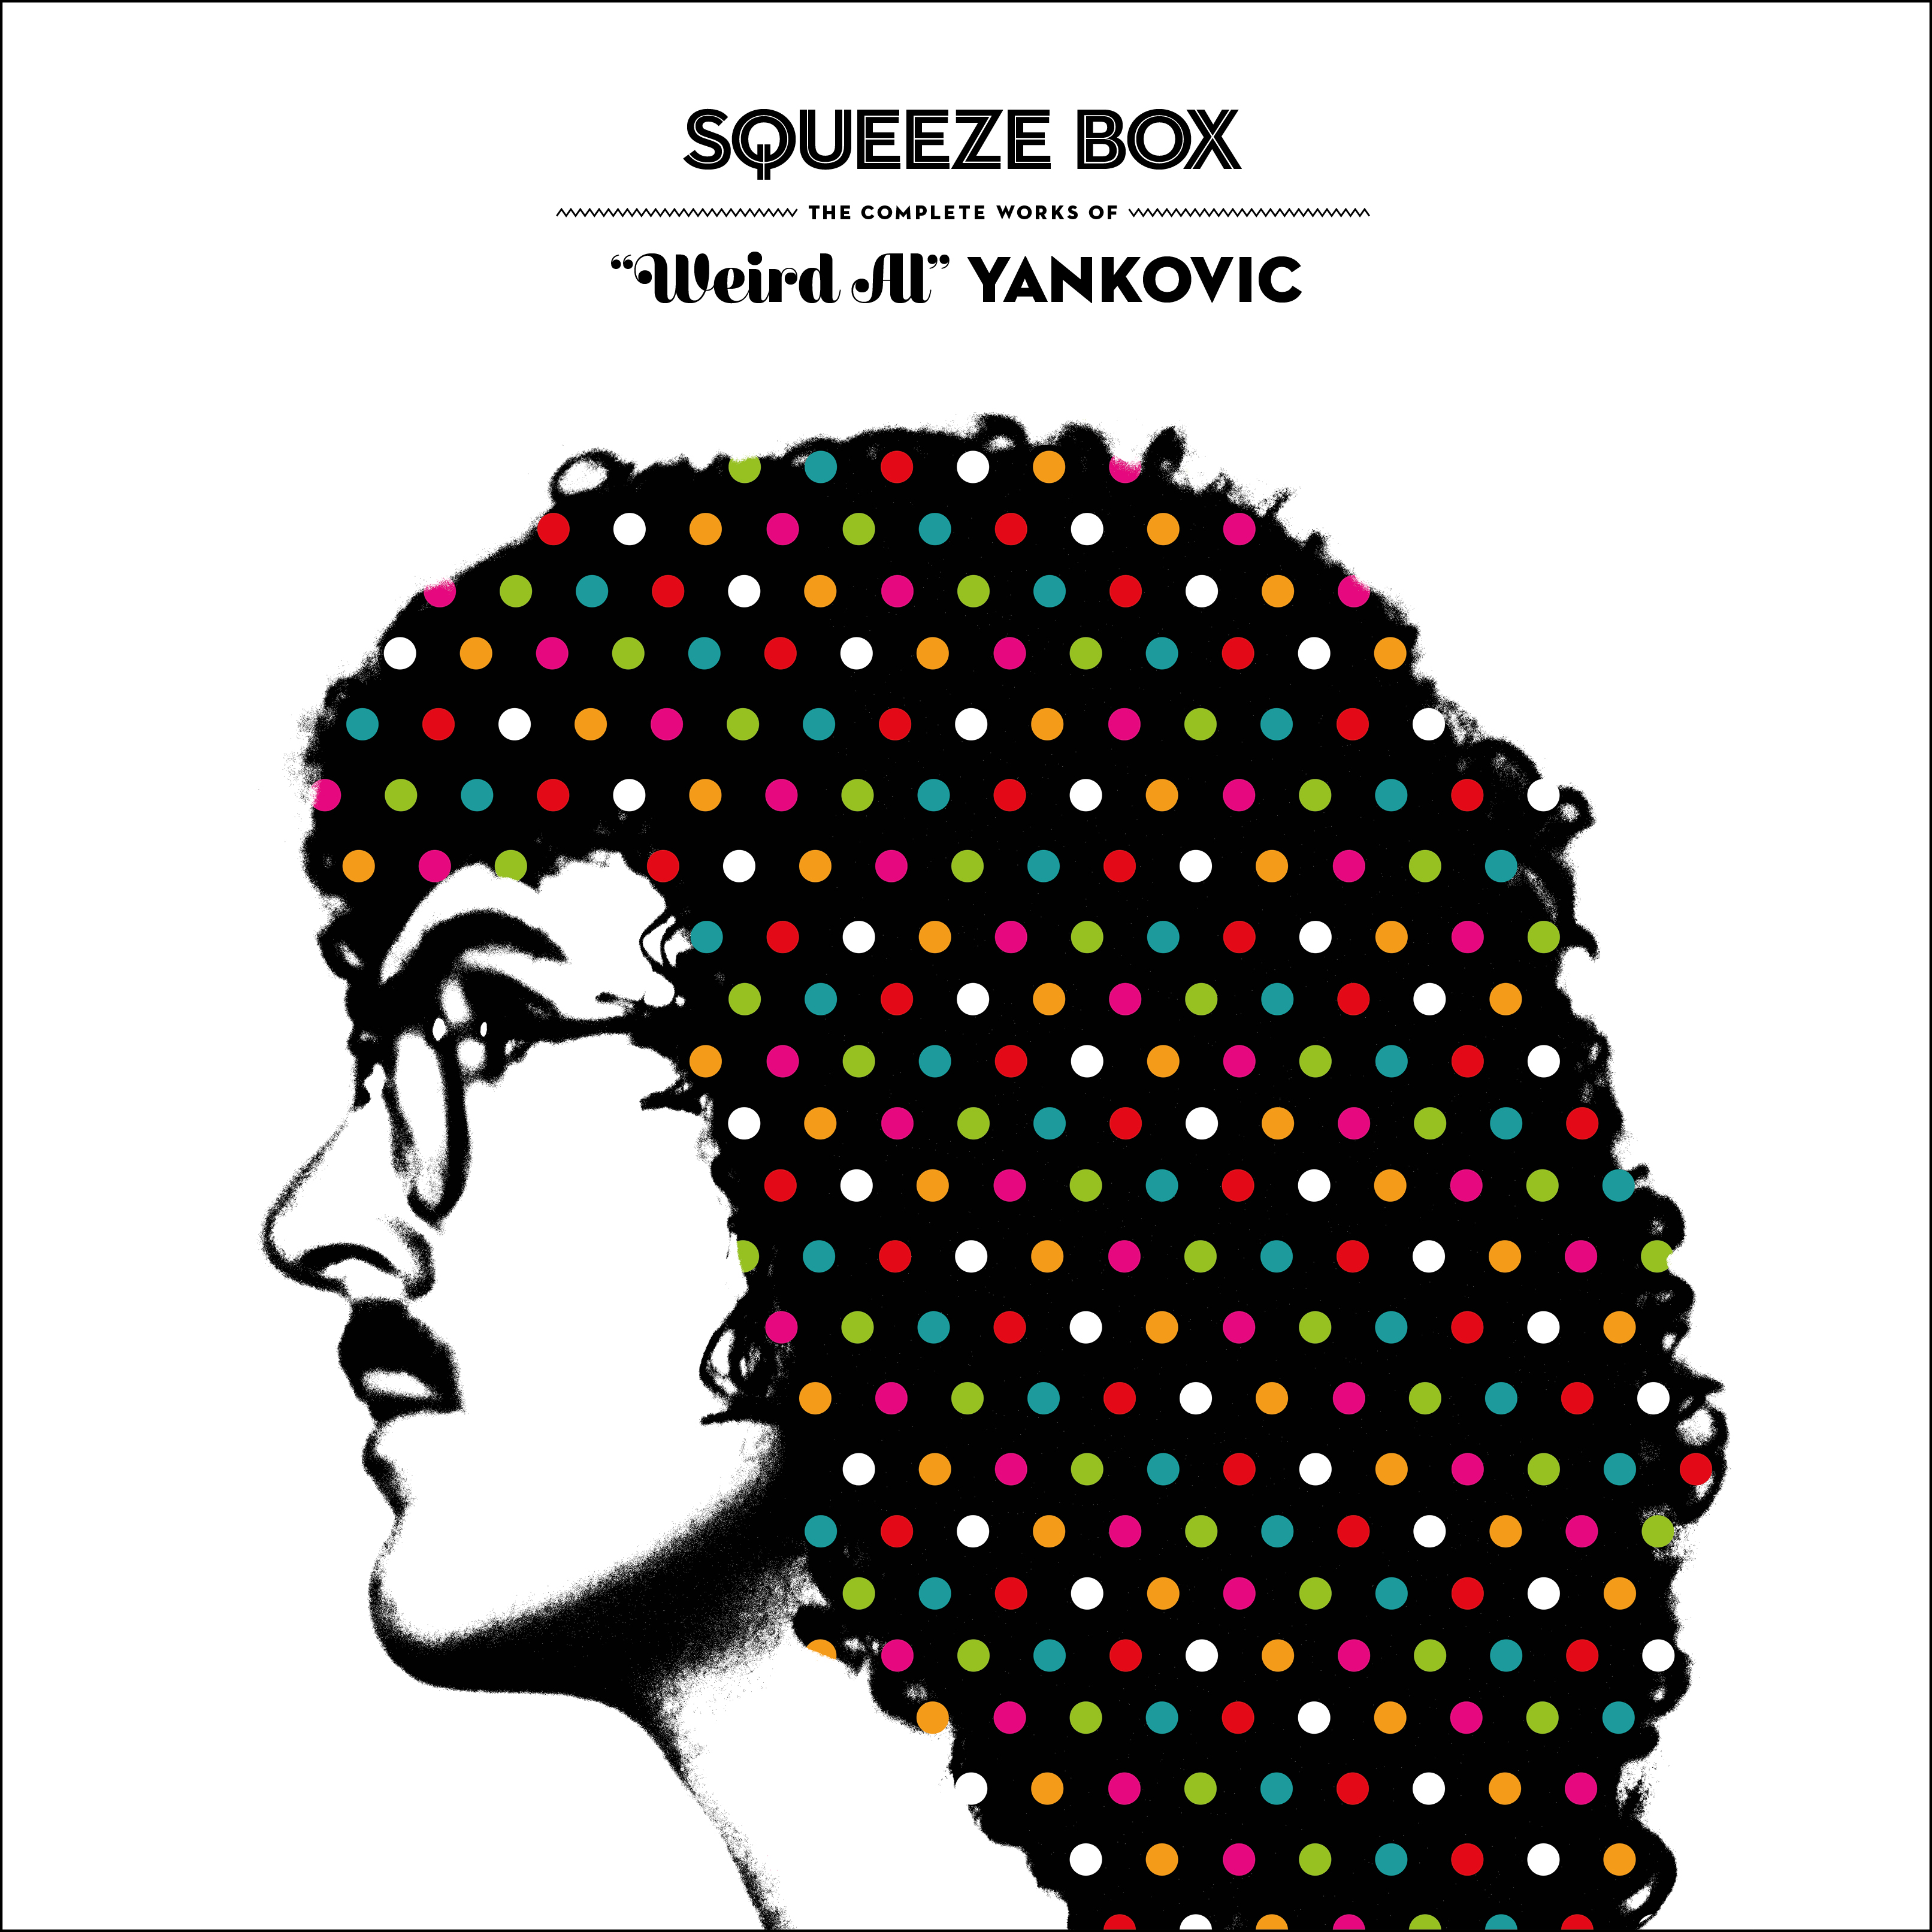 al squeezebox cvr final Weird Al Yankovics new career spanning box set is housed in an accordion